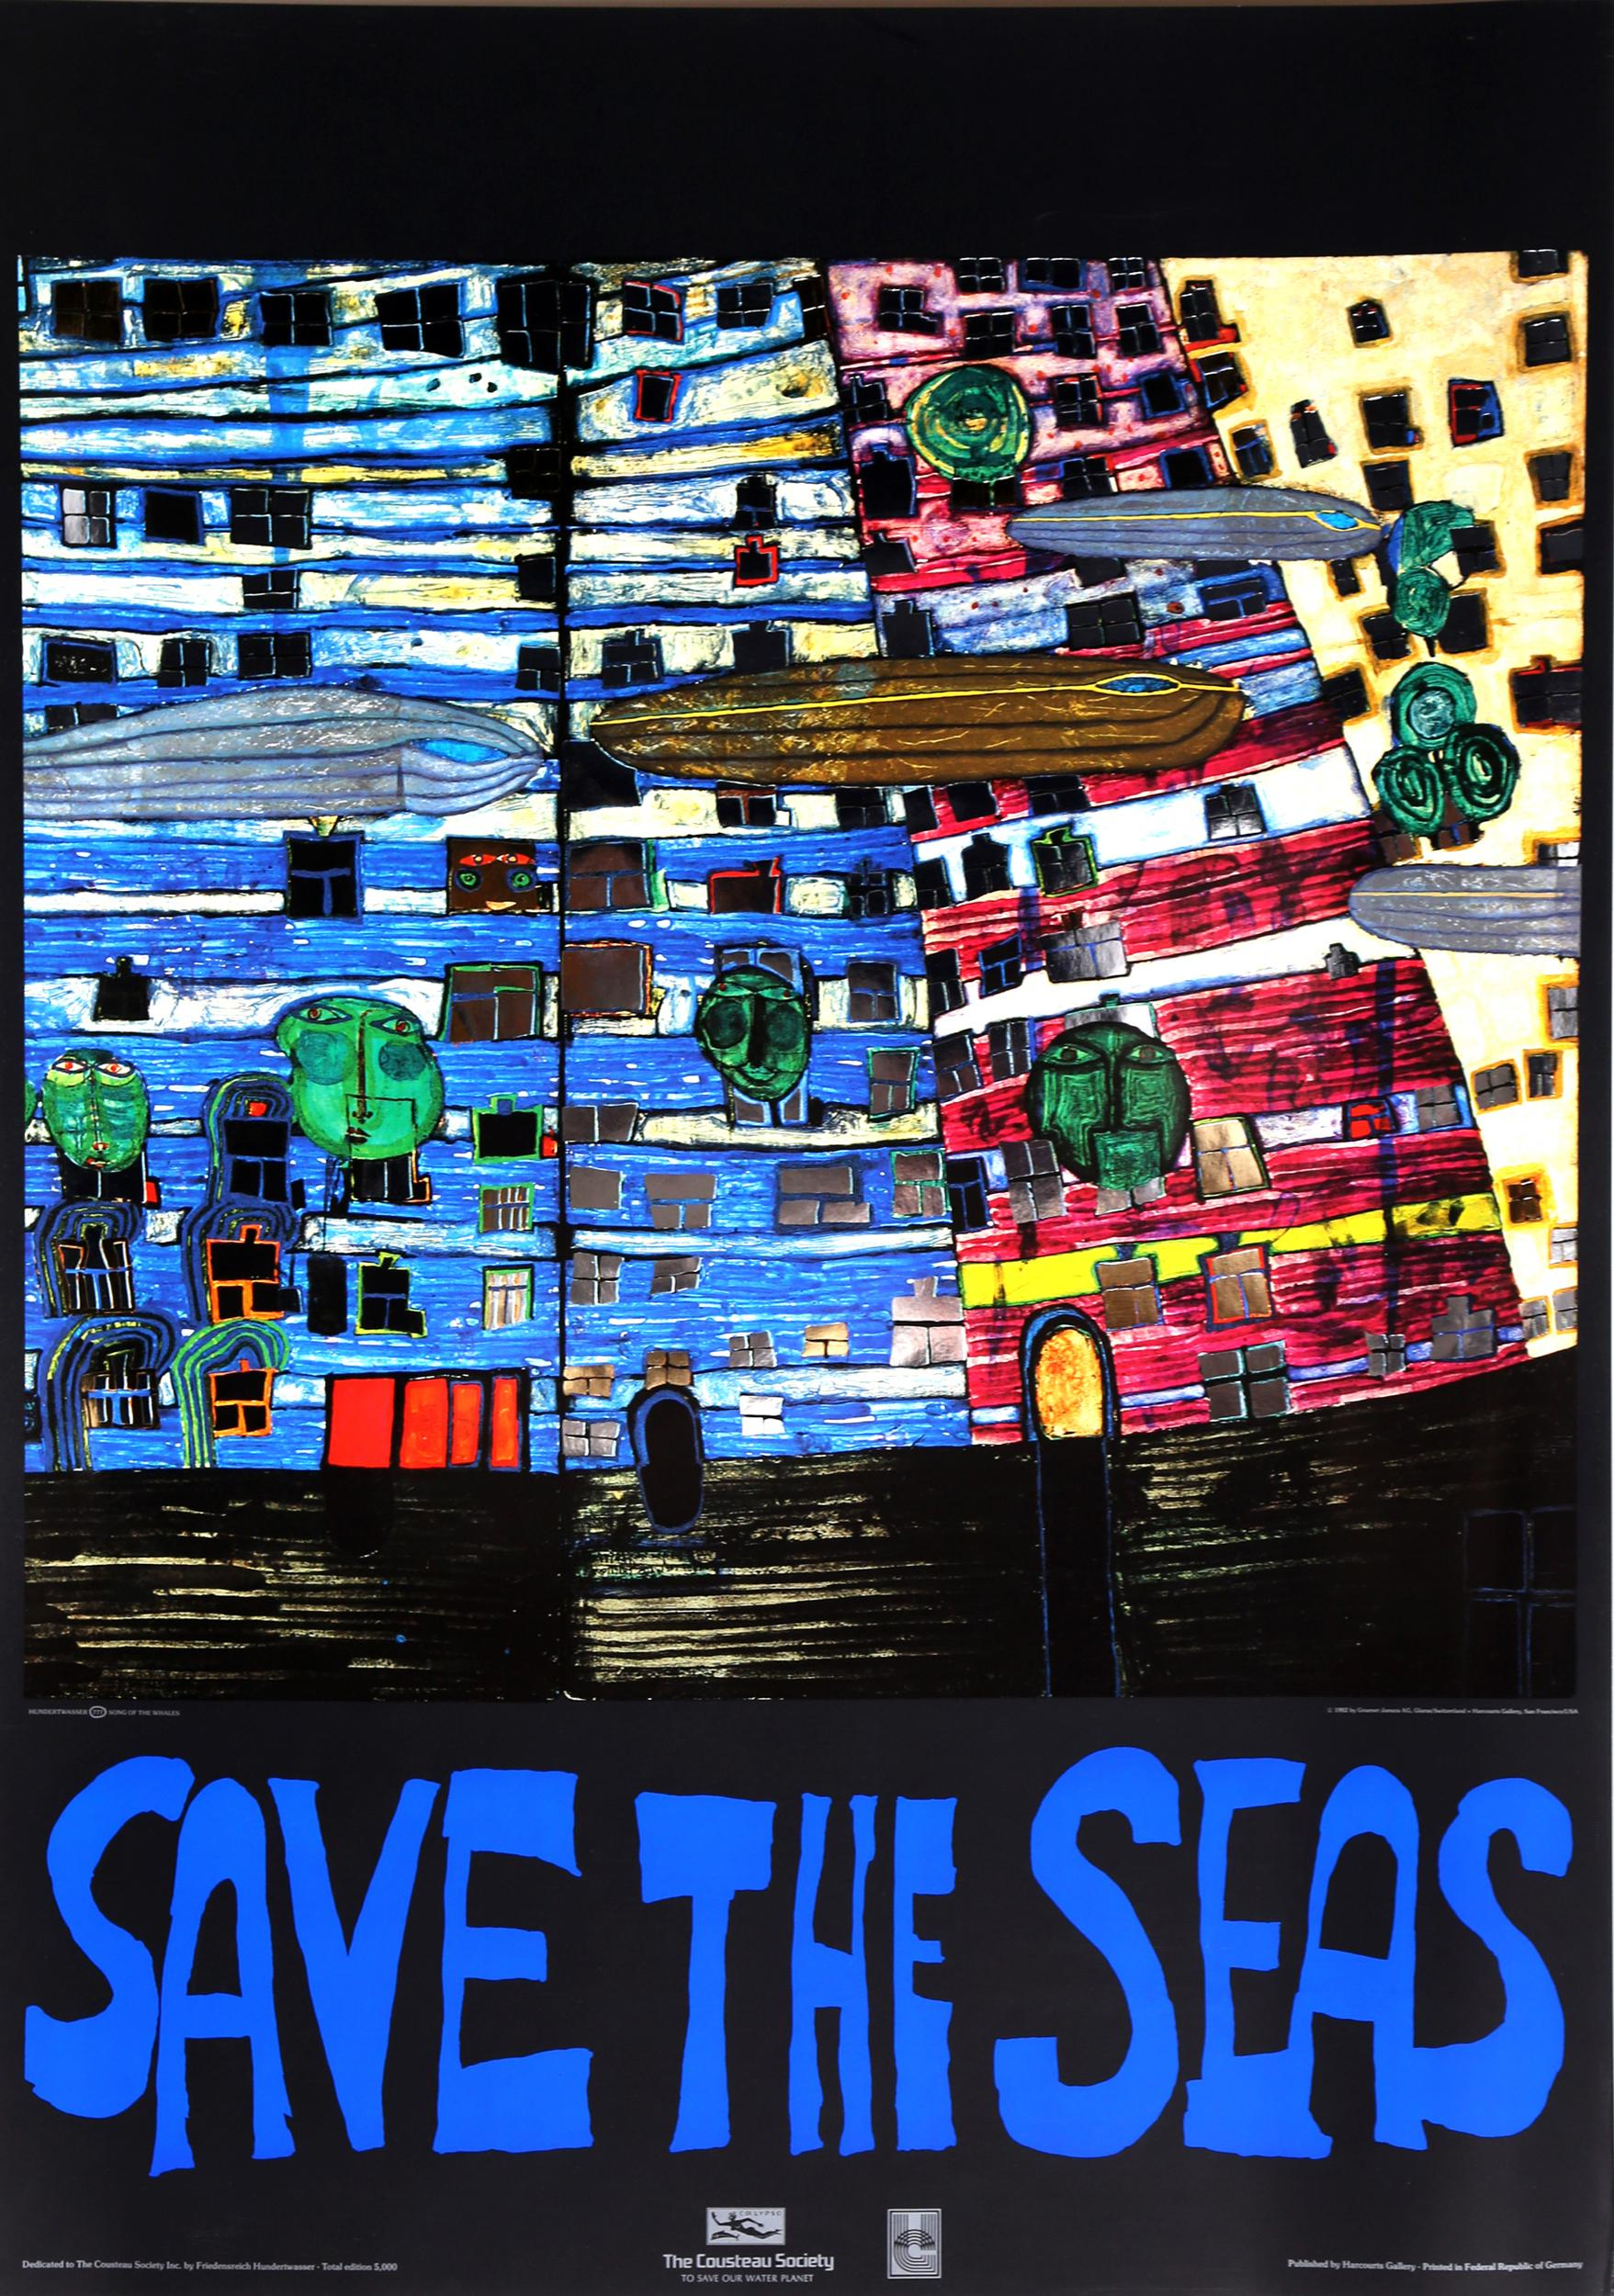 Friedensreich Hundertwasser, Save the Seas, Offset Print with Foil Embossing